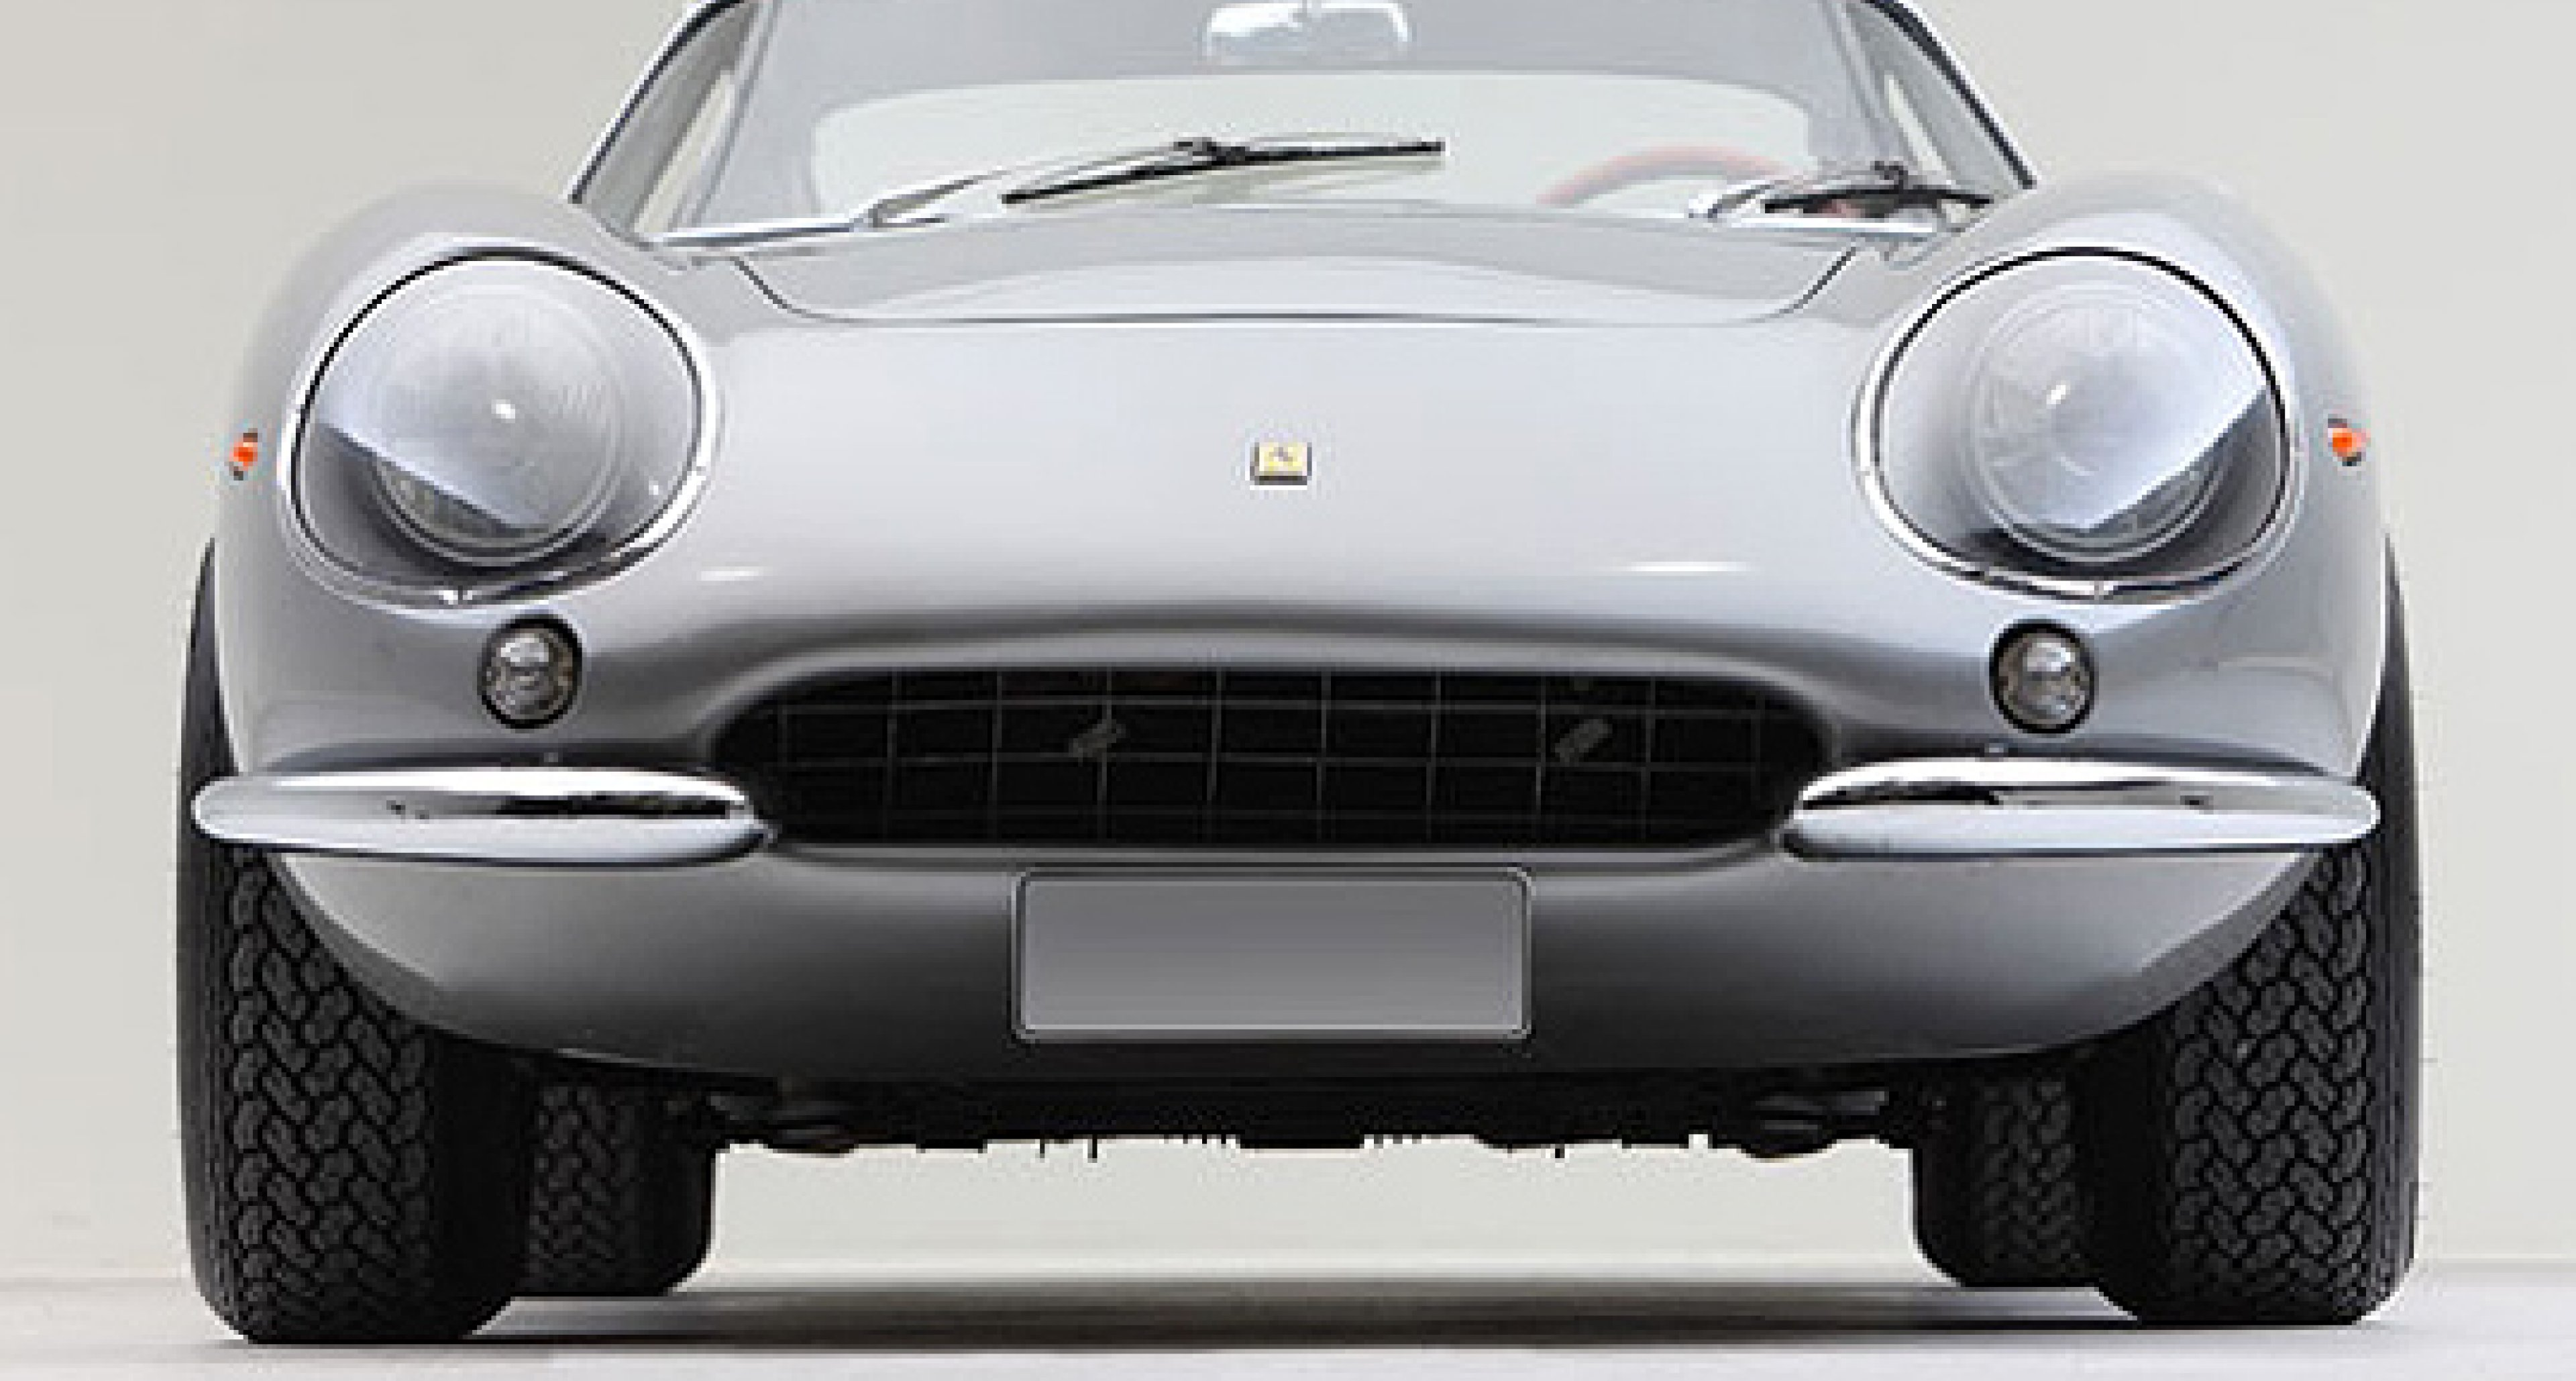 RM Auctions' 'Sporting Classics of Monaco': Exciting Early Entries